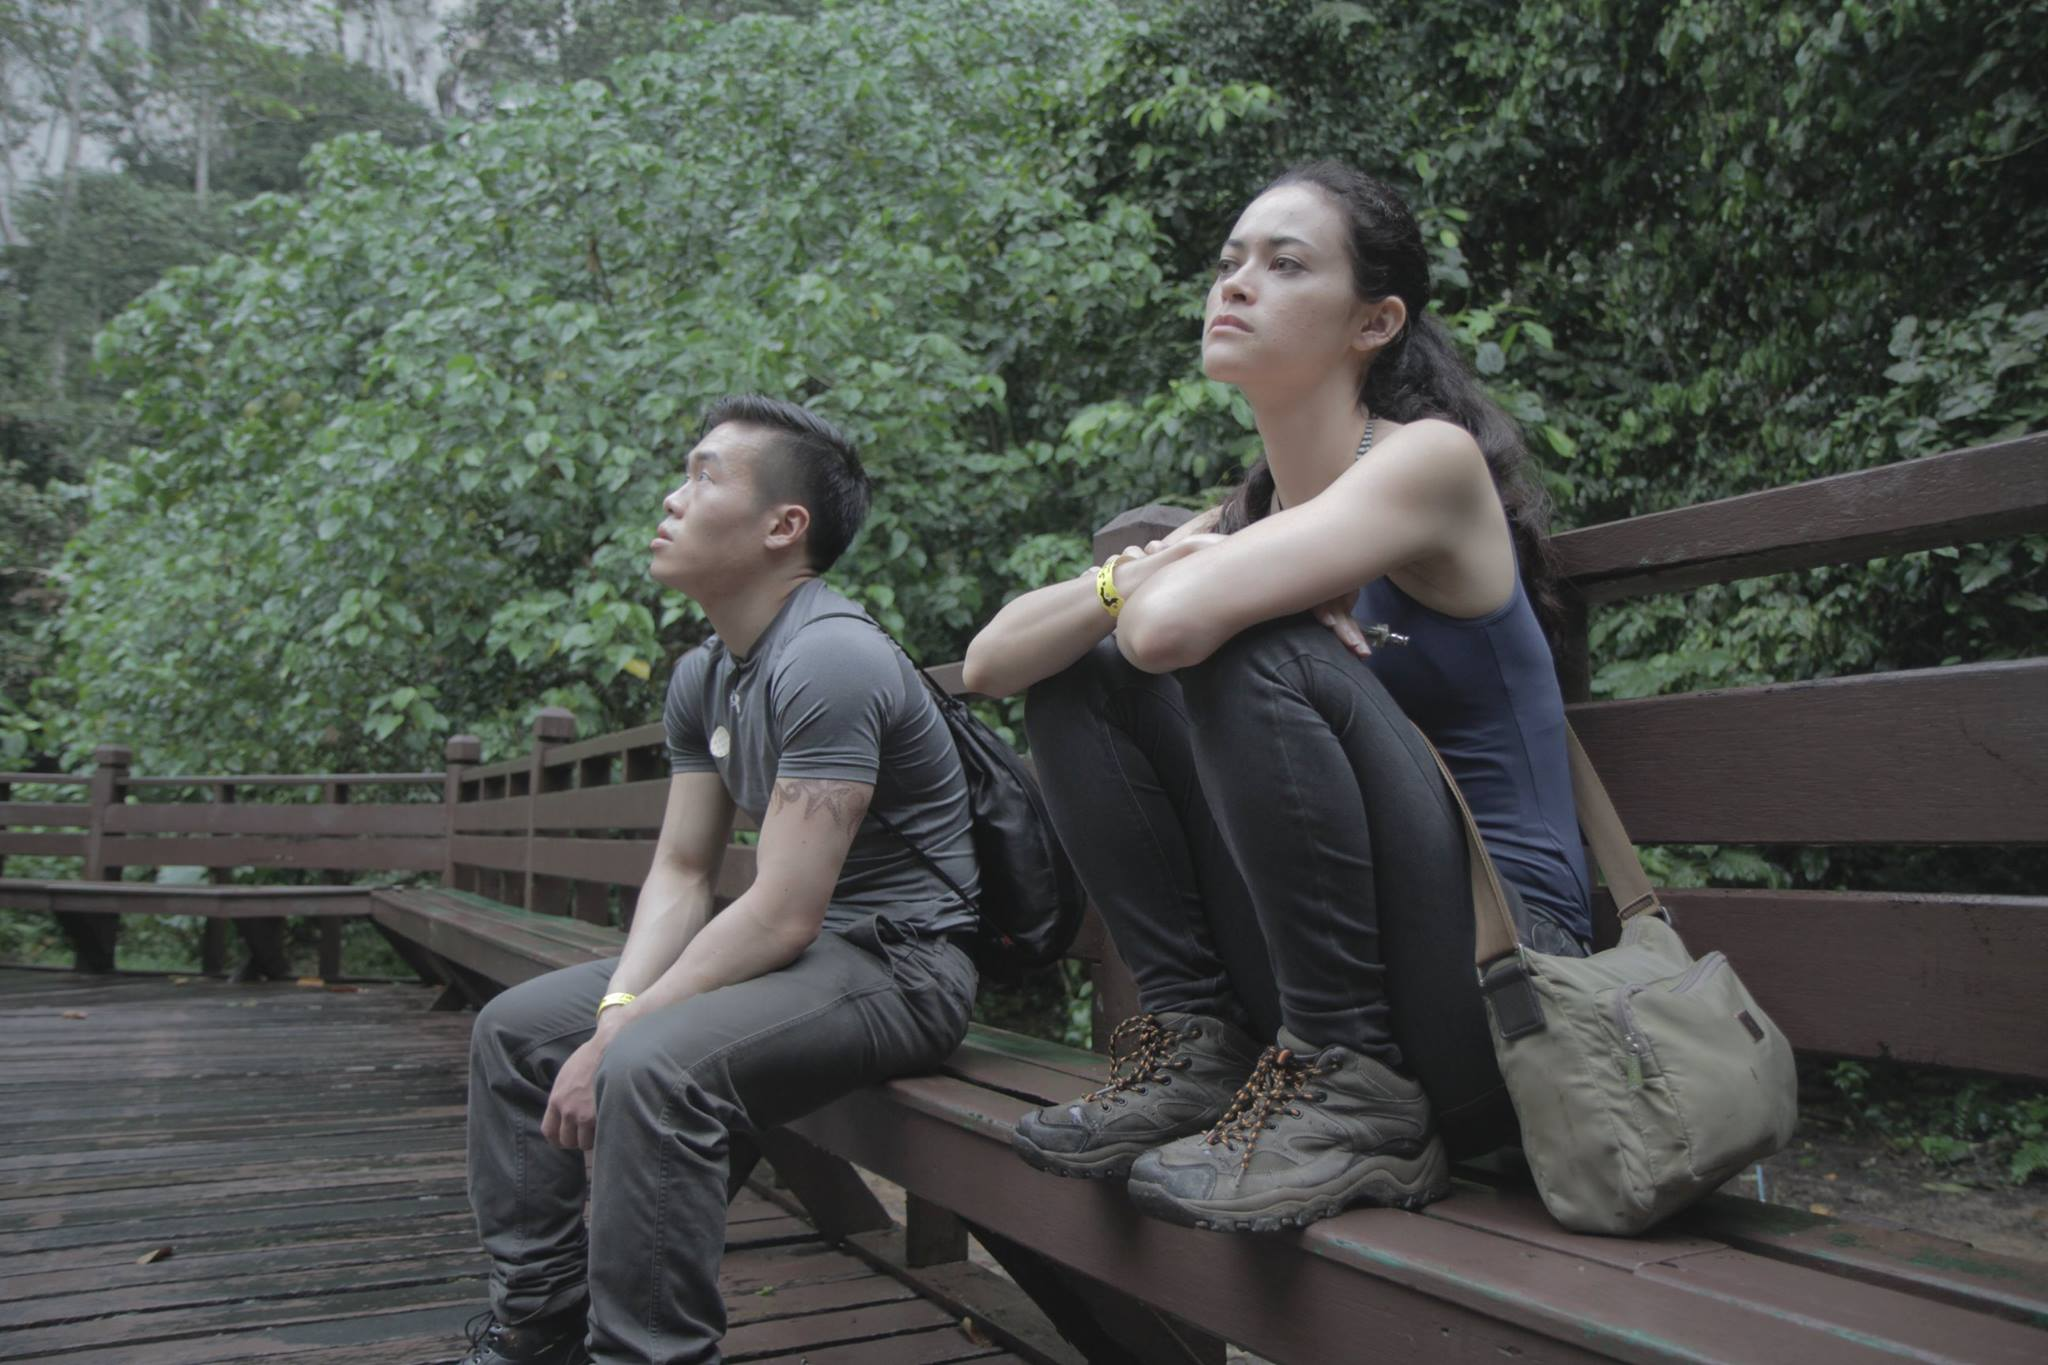 Kan Lume /Singapore / 2015 / English / 16min   Two actors travel to Malaysia to make a film. Instead of seeing them in conventional scenes, we see them in-between takes. They complain and irritate each other, discuss the lack of familial support and experience the difficulties of being on an independent film shoot. There are two characters in the film – a young, enthusiastic actor and an experienced, world-weary actress. Their differences may be the result of chance rather than choice.   Director: Kan Lumé's debut feature film The Art of Flirting won Best ASEAN Feature at Malaysian Video Awards 2005. Second feature Solos won the Best Newcomer Award at Torino GLBT Film Festival 2007. Third film Dreams from the Third World received the MovieMax Award at Cinema Digital Seoul 2008. Liberta picked up Special Mention at Cinema Digital Seoul 2012 and the NETPAC Award at Tripoli Film Festival 2013. His latest film The Naked DJ earned Kan his second NETPAC award for Best Asian Film at Jogja-Netpac Asian Film Festival 2014.